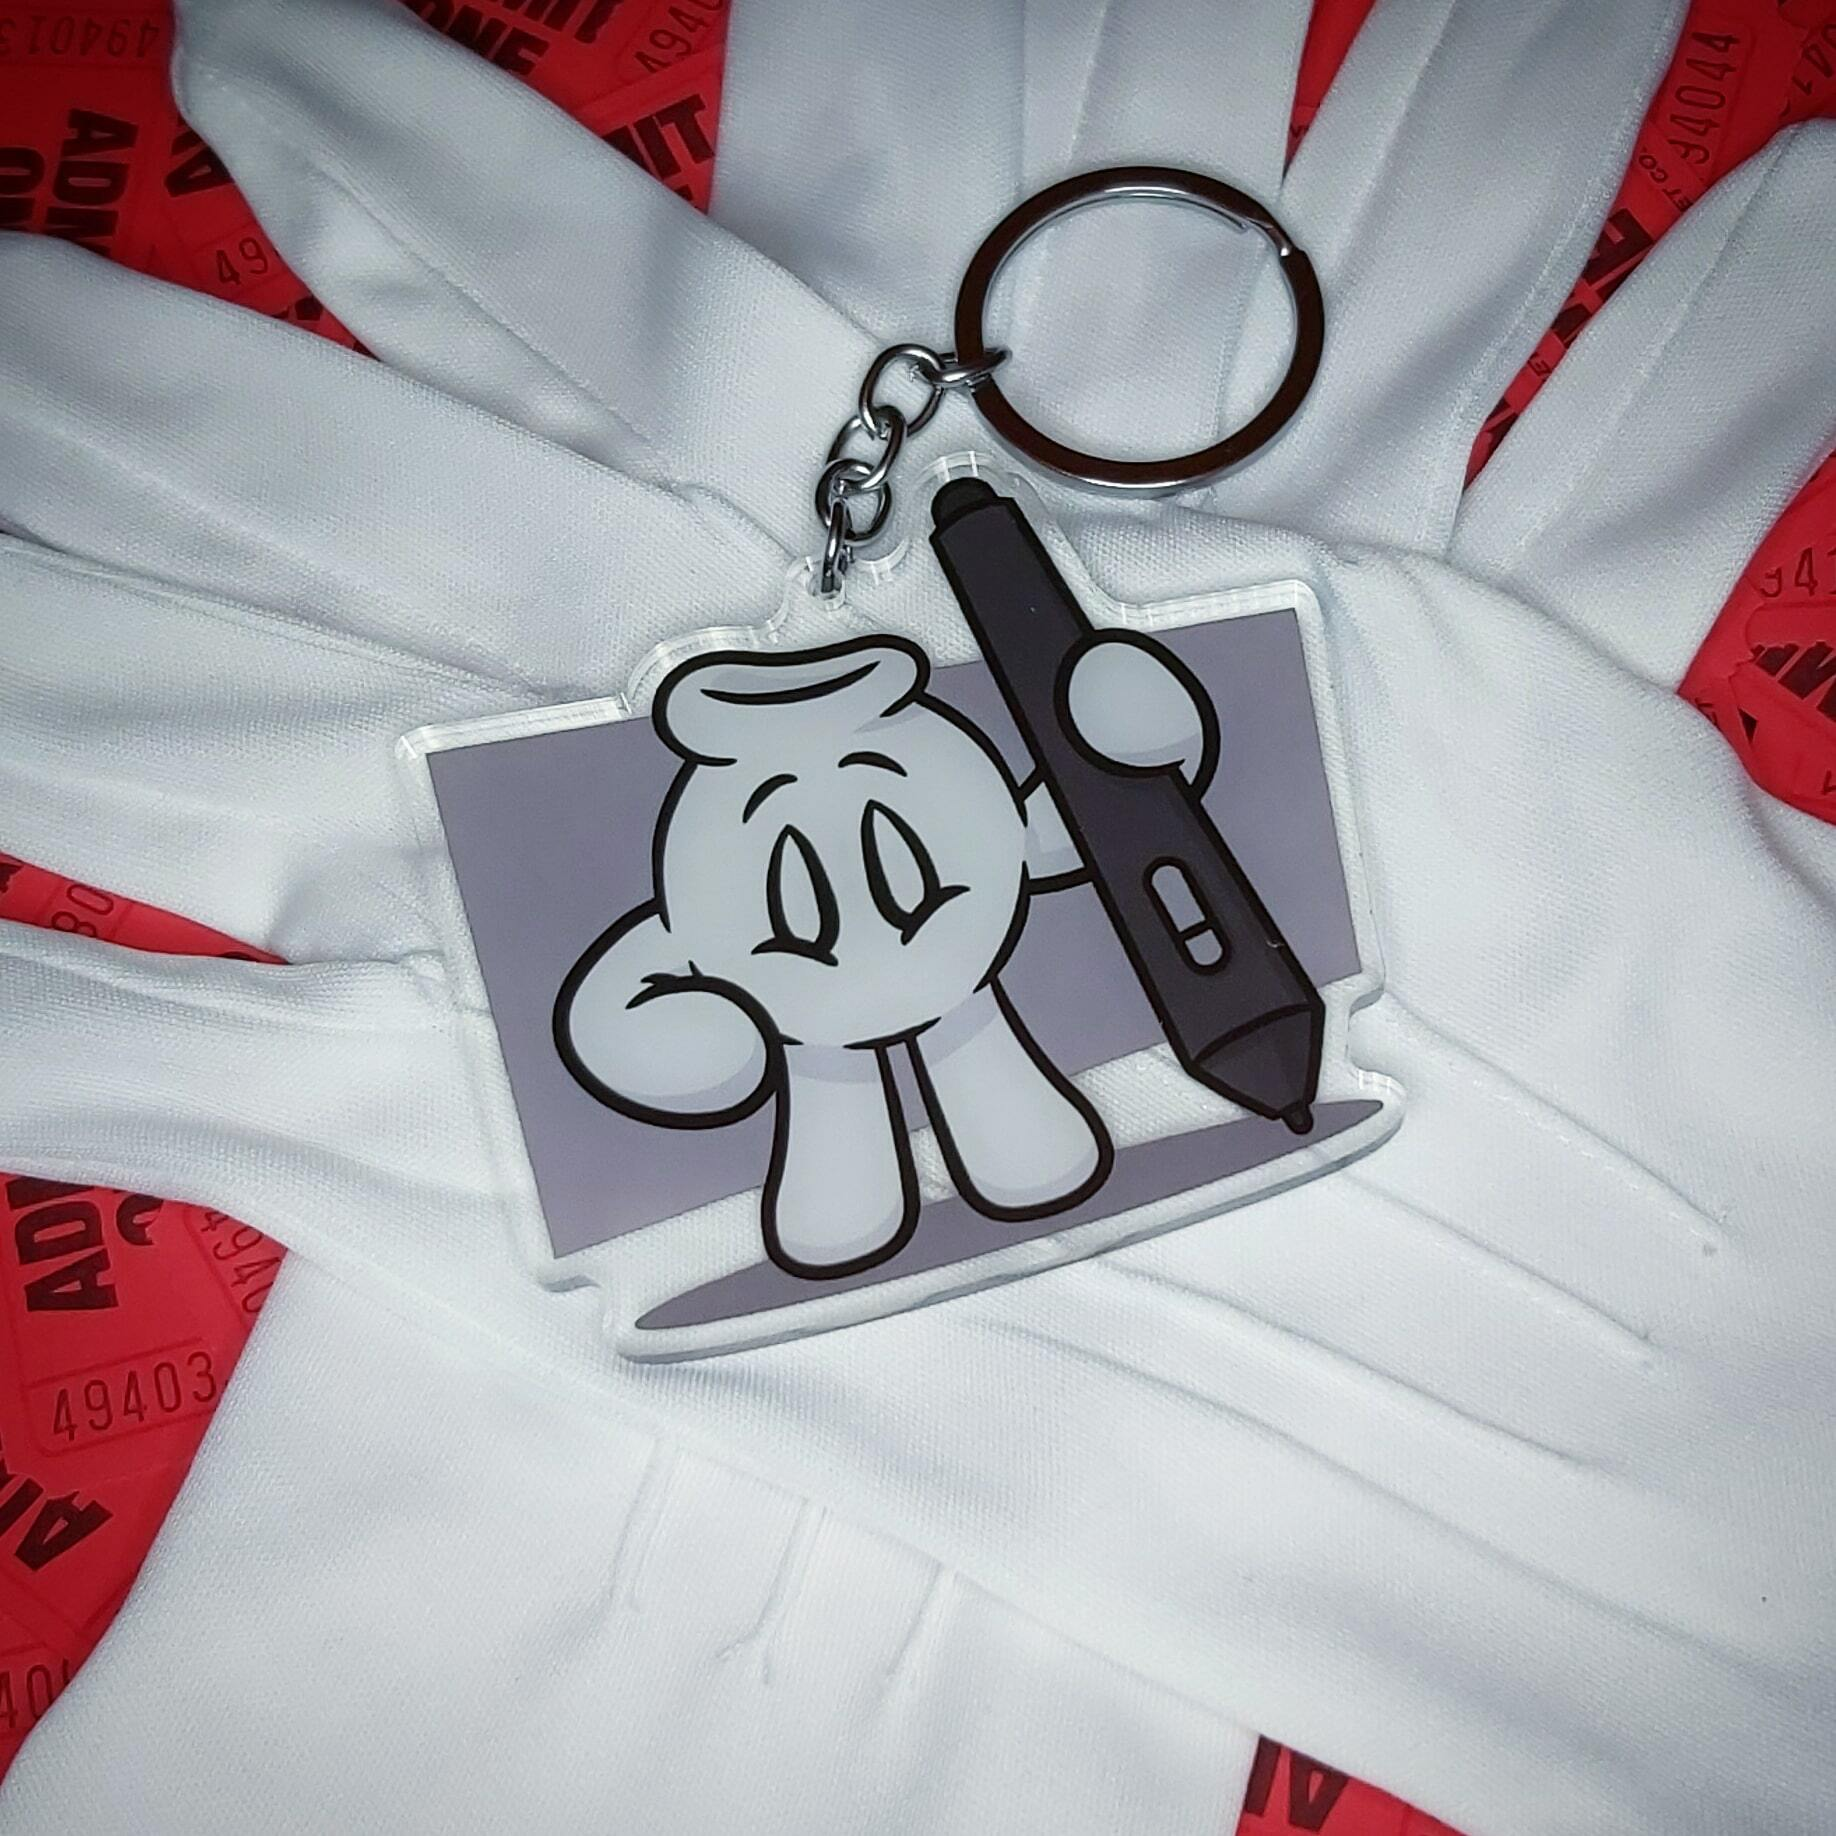 Toon Glove with Tablet Pen Keychains!